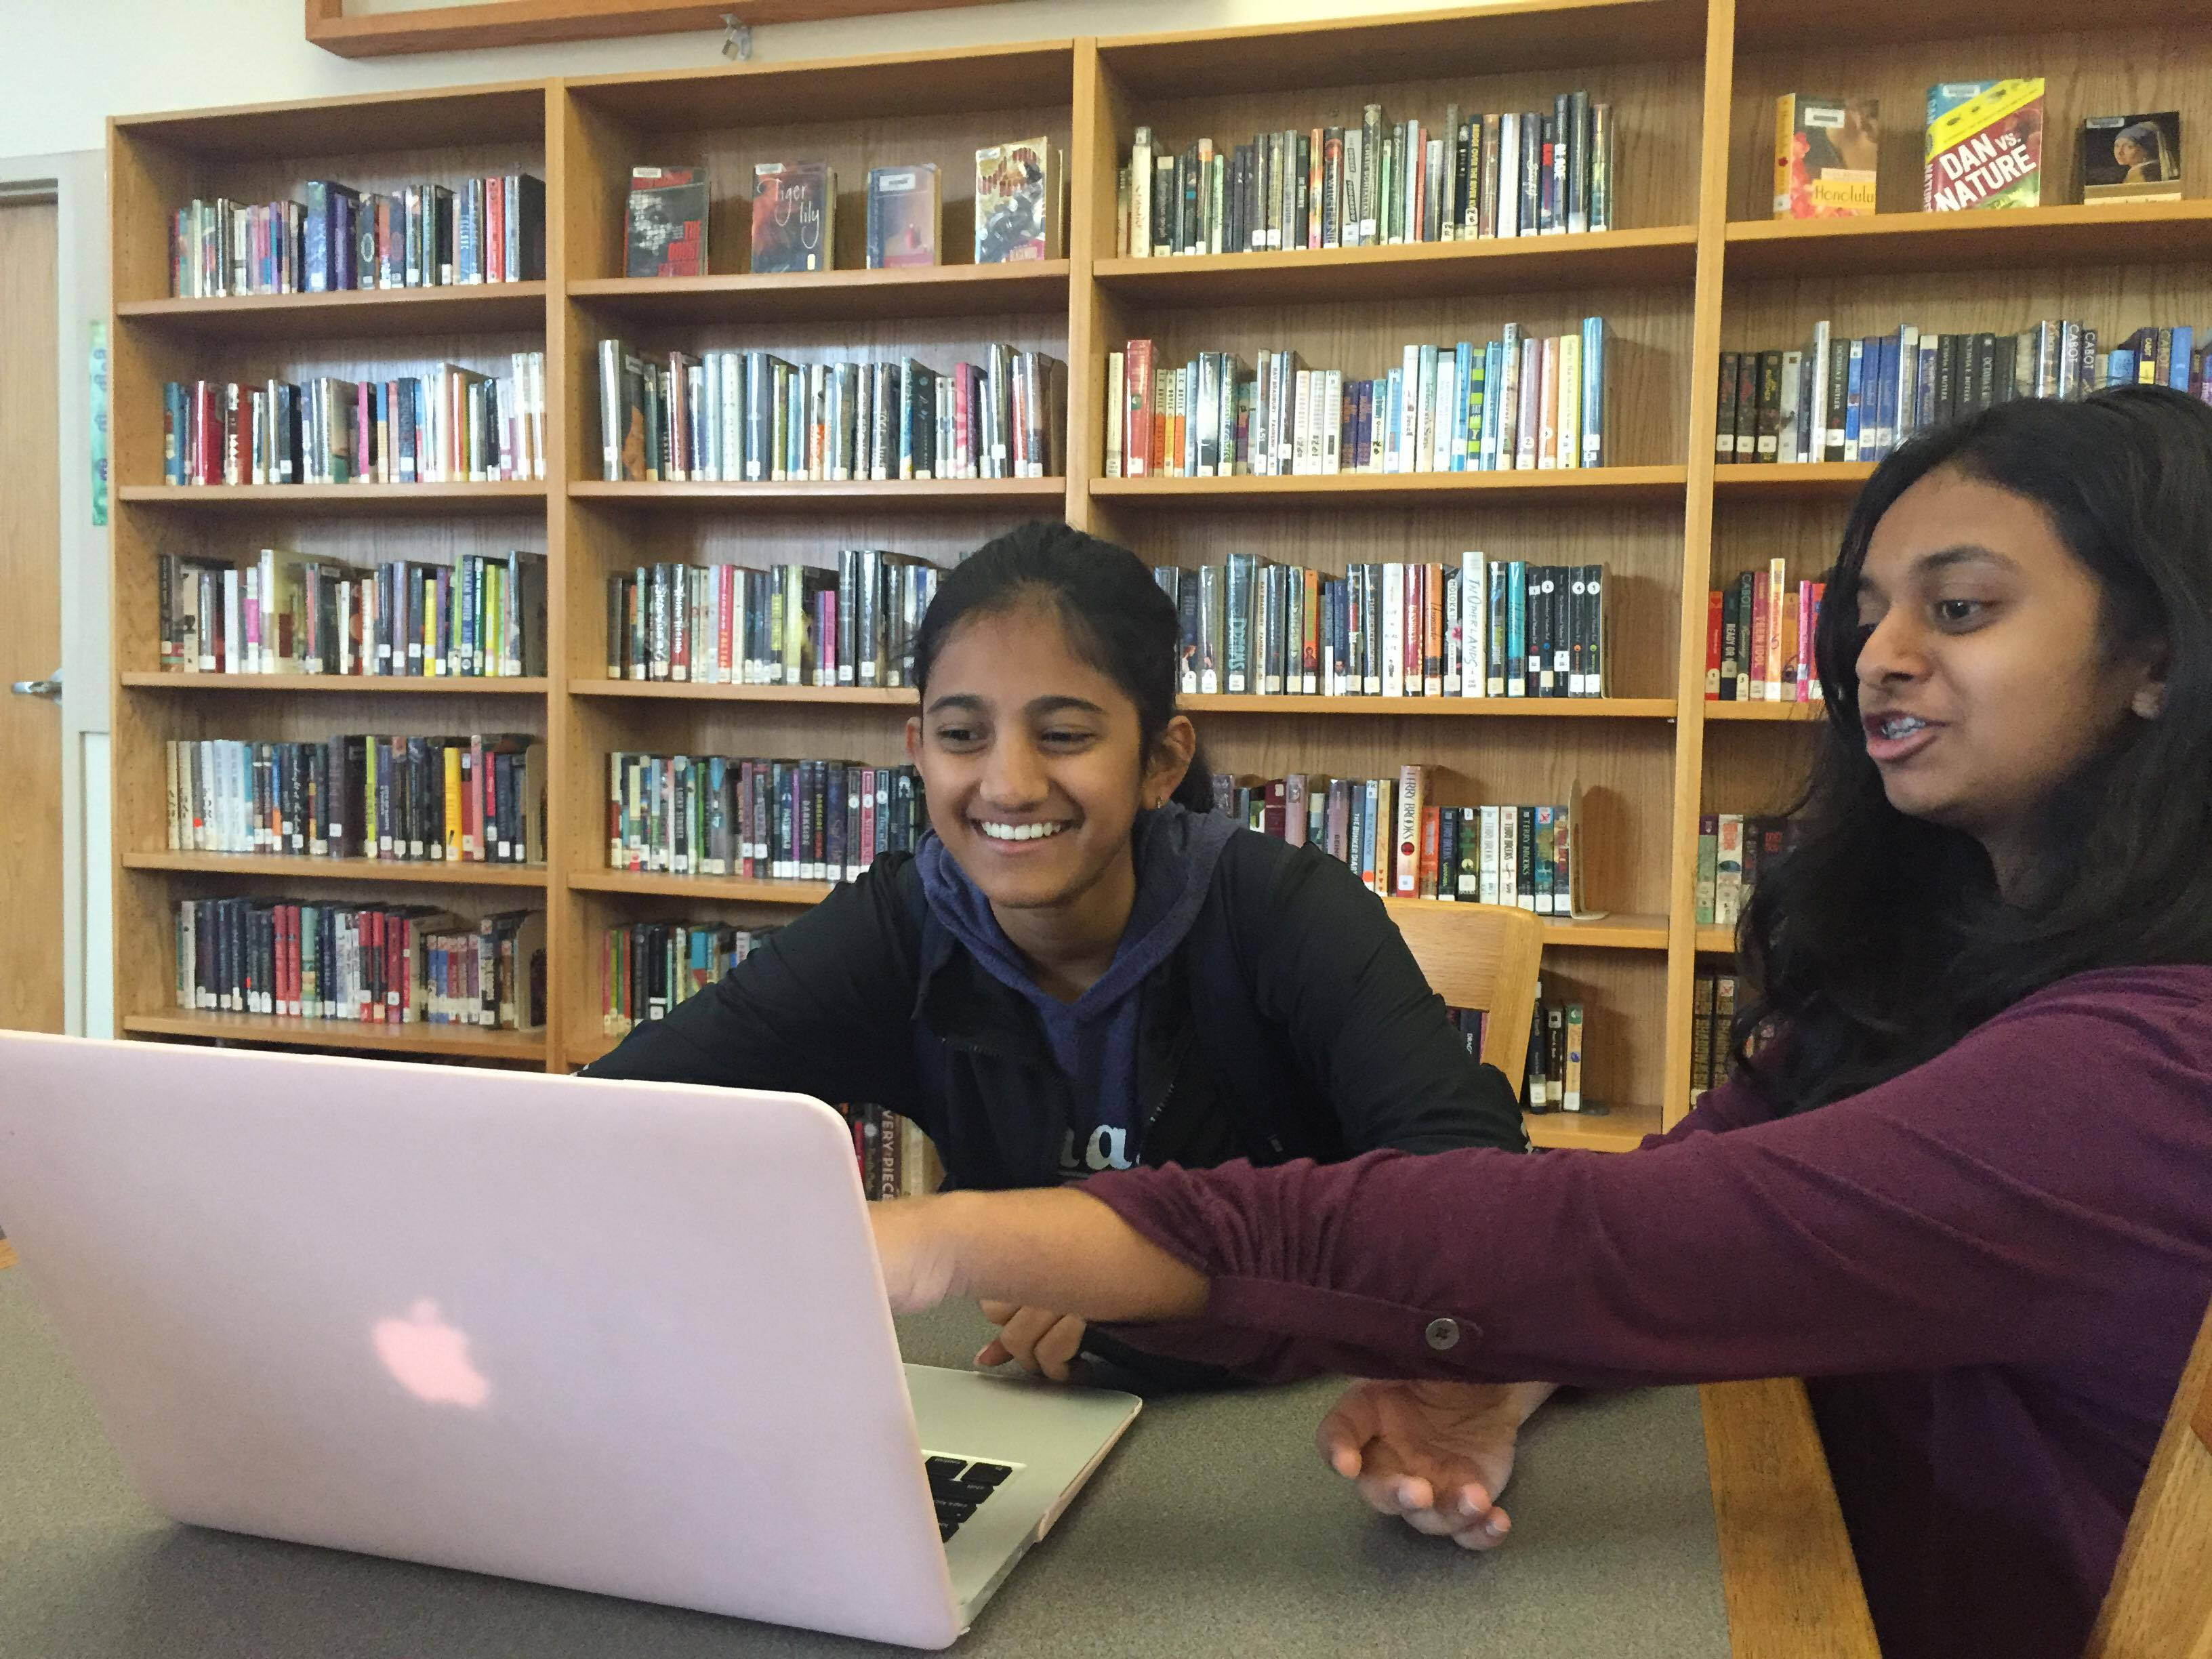 A cruelty-free pig dissection: Two sophomores create a virtual pig dissection as an alternative for students.